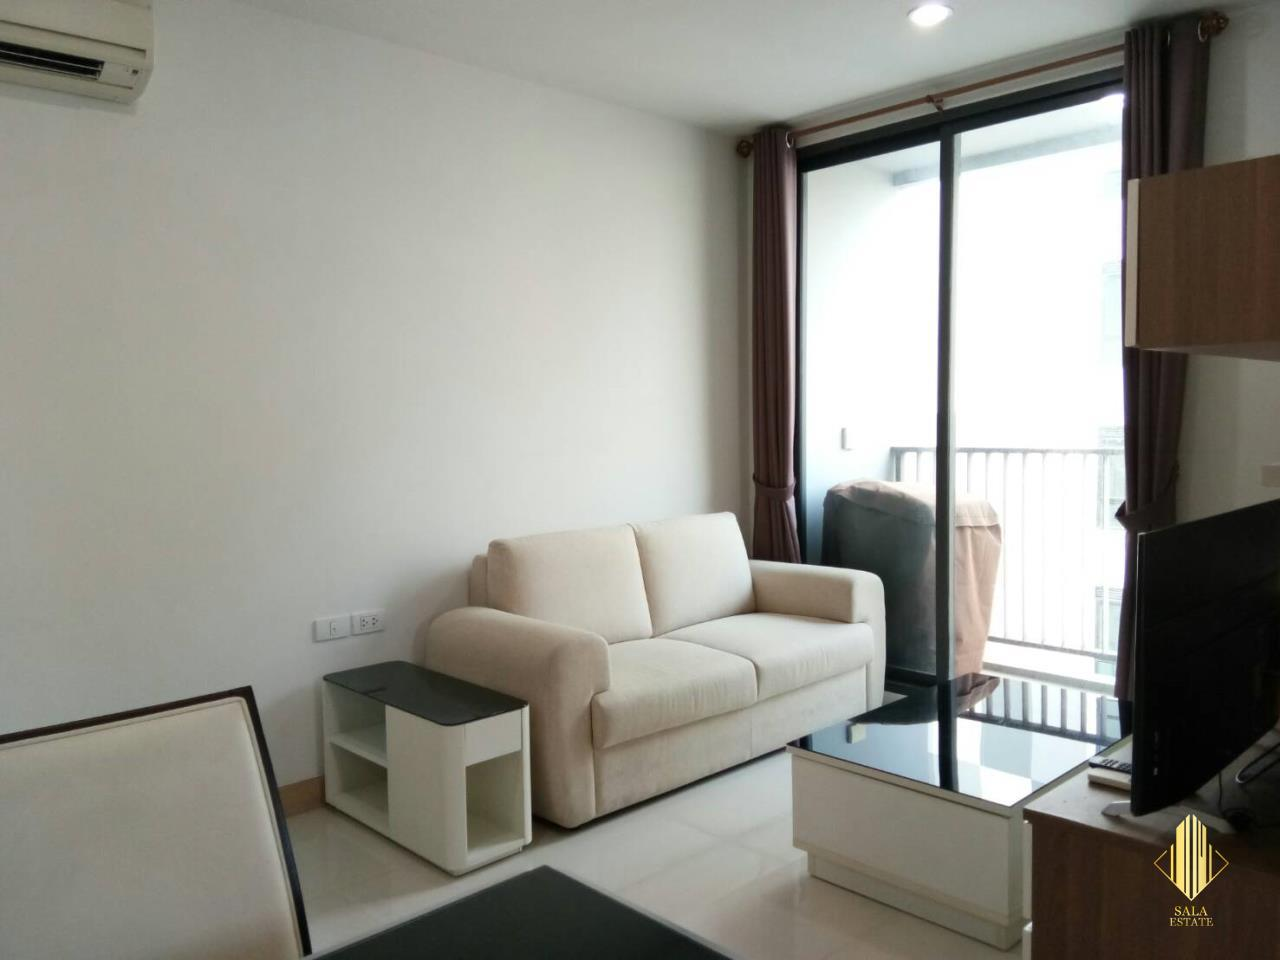 SALA ESTATE Agency's THE PRESIDENT SUKHUMWIT-BTS ONNUT 2 BEDROOM 1 BATHROOM FULLY FURNISHED 6